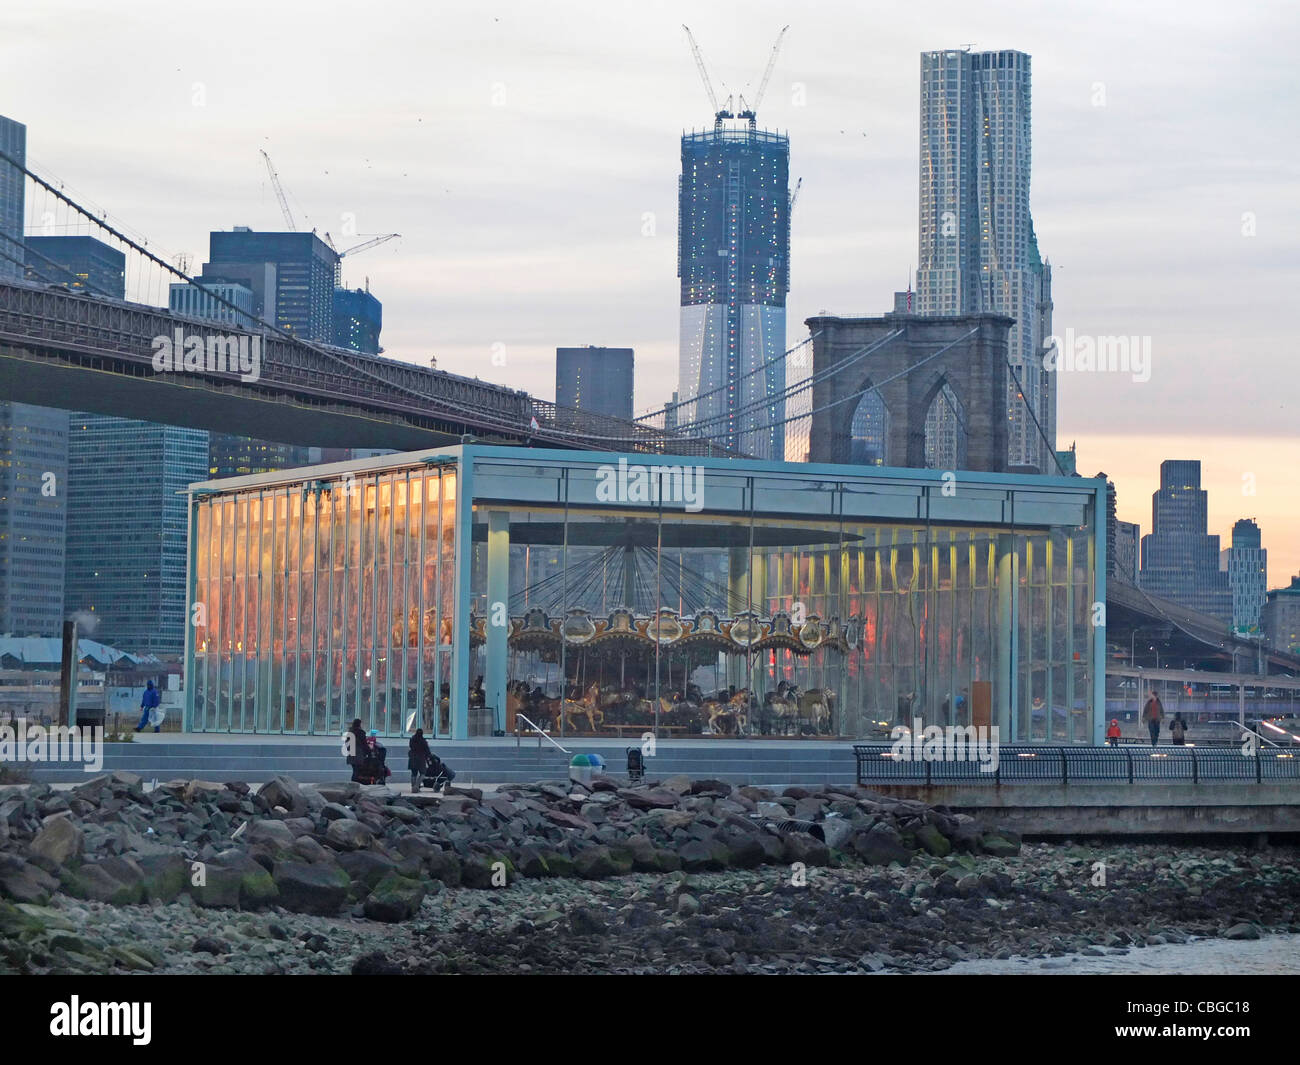 Jane's carousel in Brooklyn Bridge Park - Stock Image